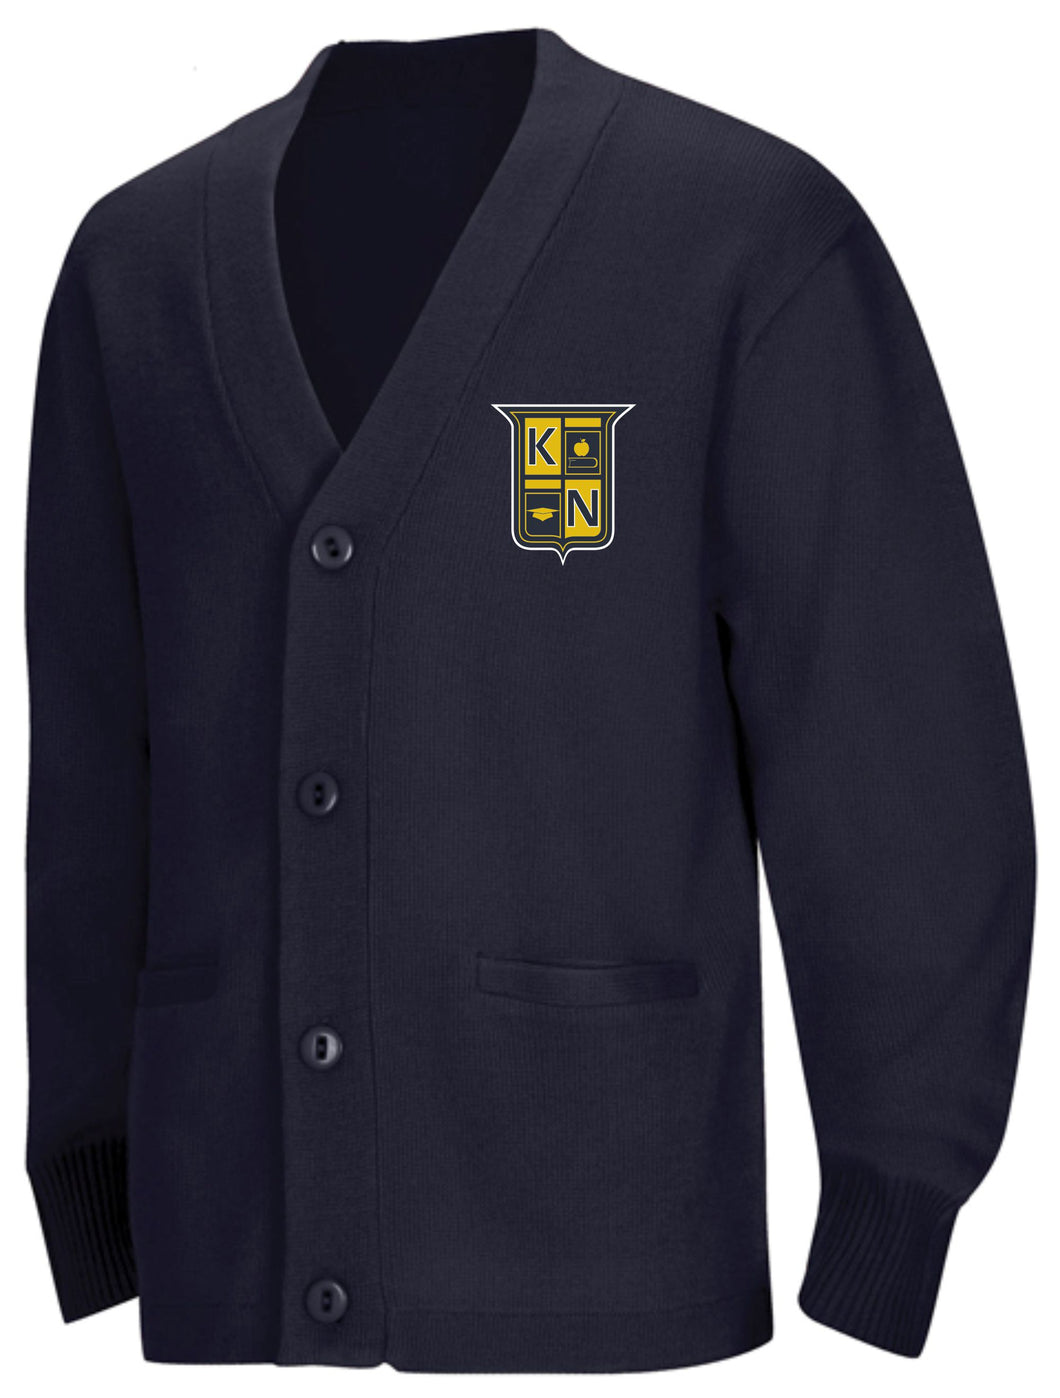 KIPP Nexus Middle School Cardigan